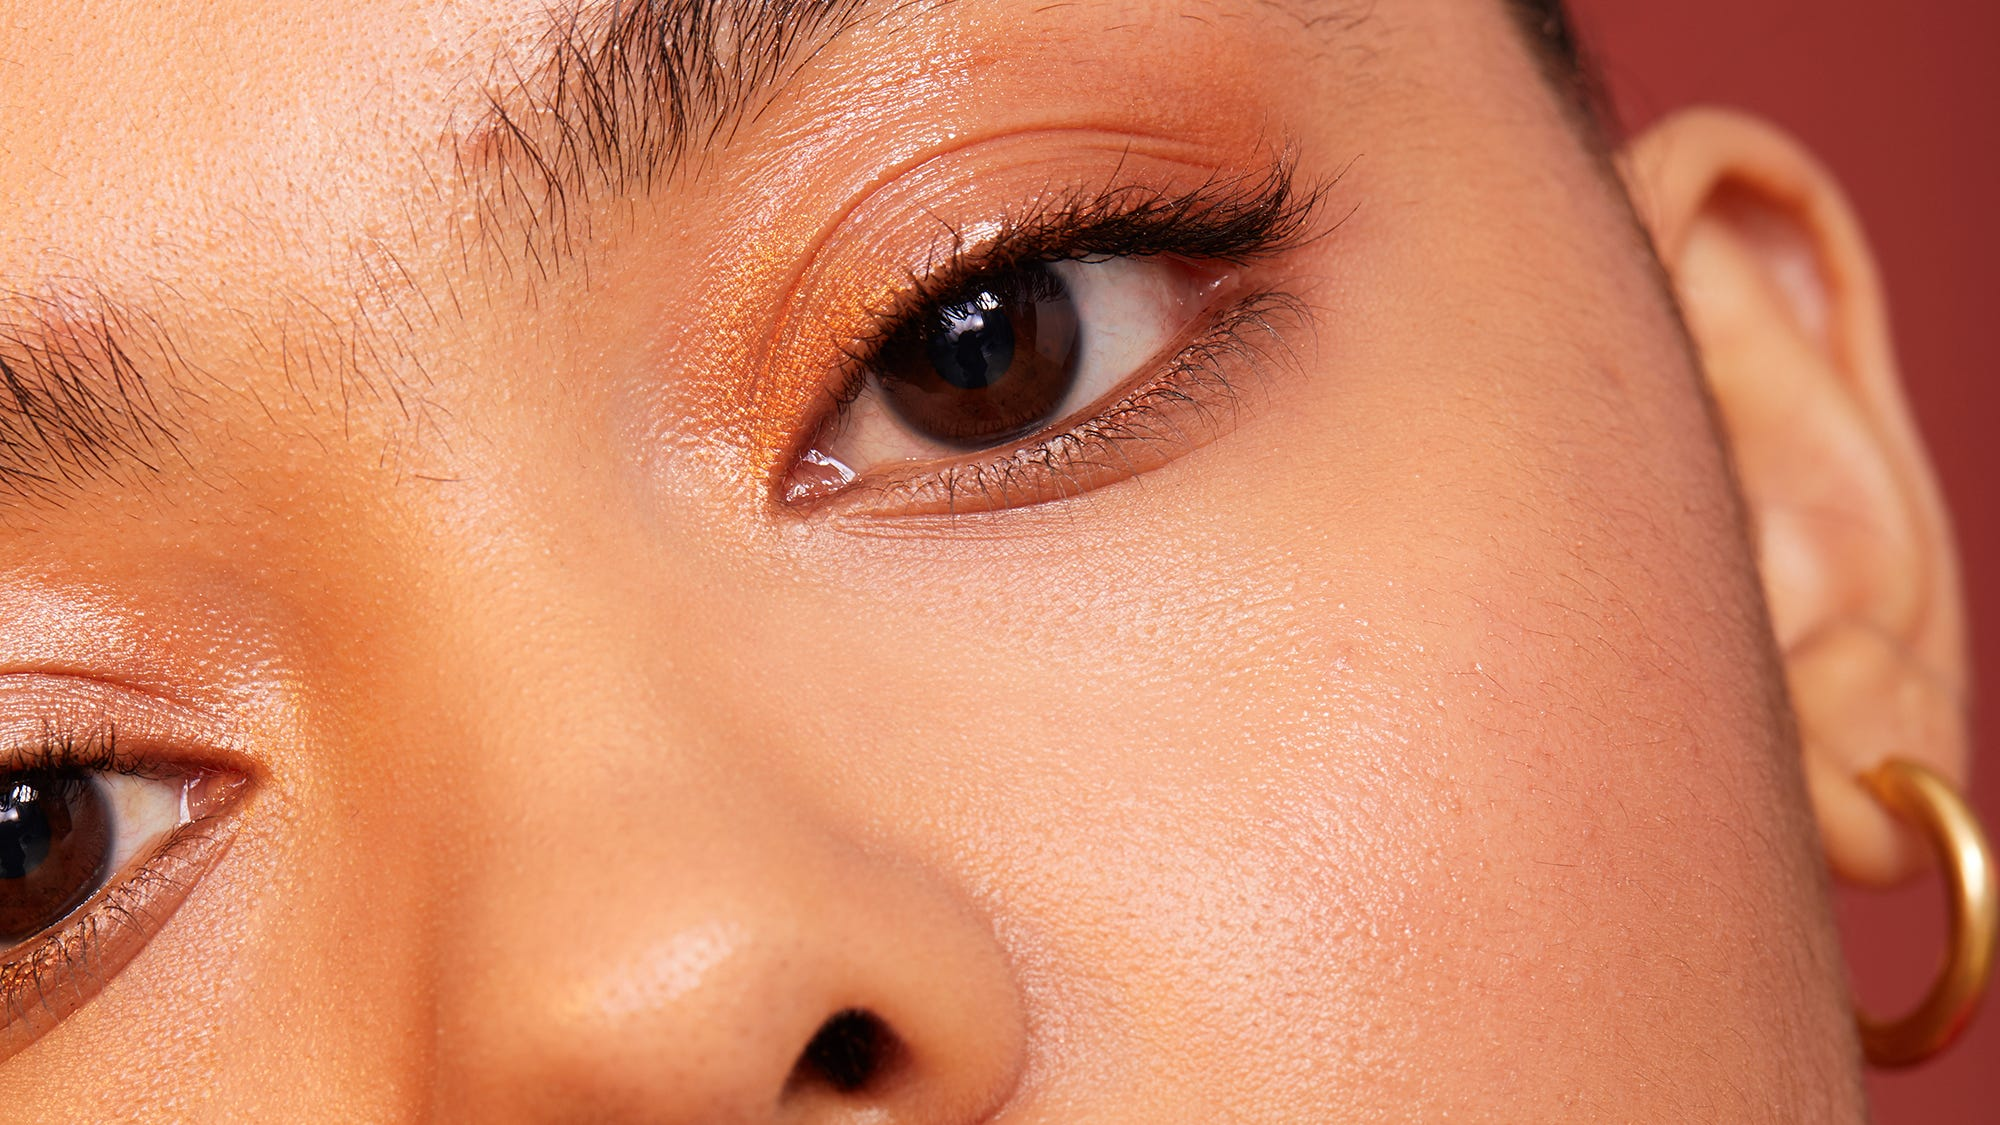 b2bf74823e1 Eyelash Extensions Pros And Cons To Read Before Lashes